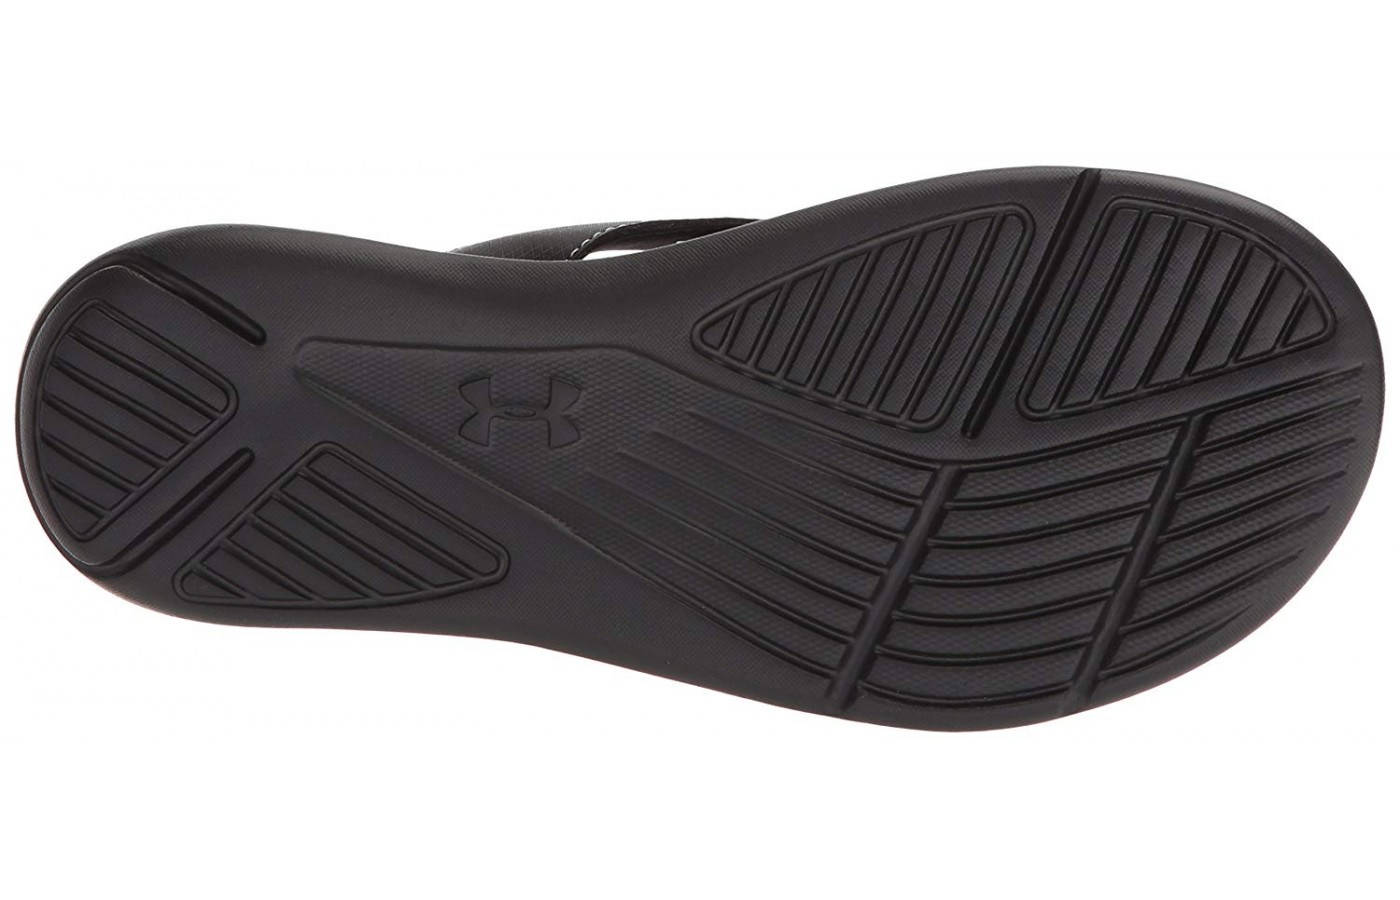 A look at the traction of this Under Armour thong sandal.